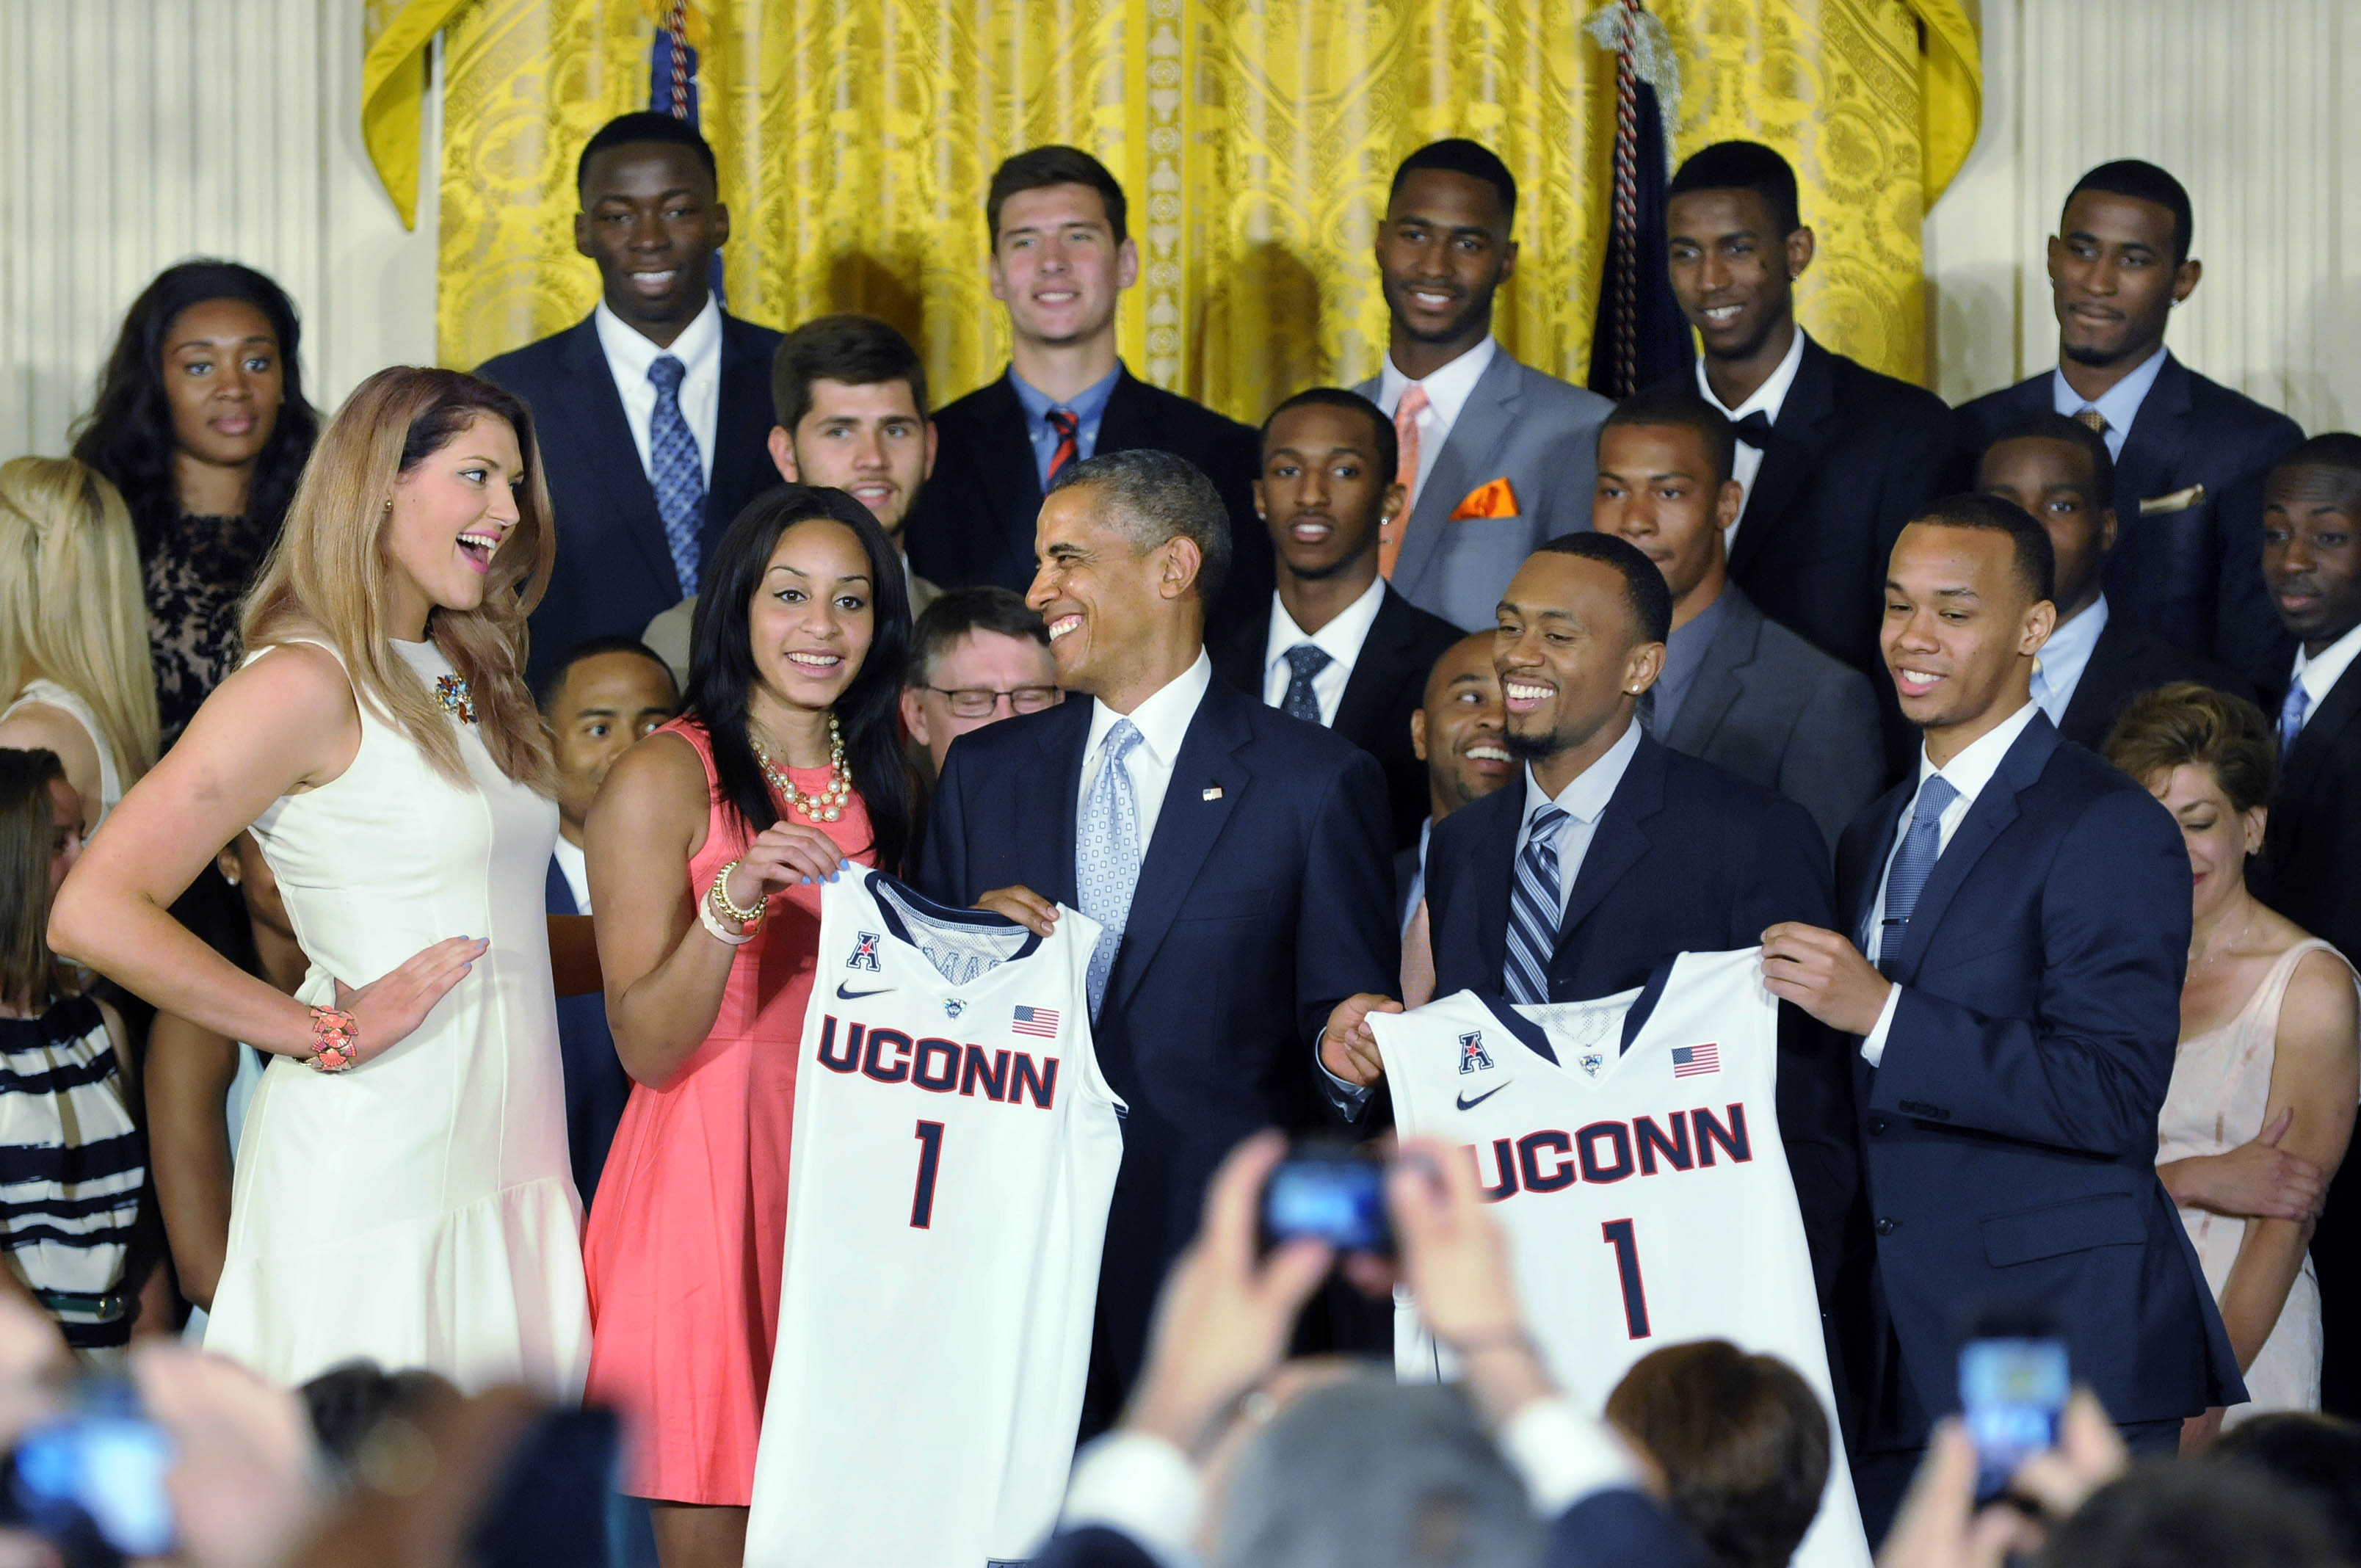 WASHINGTON, DC 06/09/14 President Barack Obama shares a laugh with Stefanie Dolson (left) after he was presented with UConn jerseys during a ceremony honoring the NCAA Champion UConn men's and women's basketball teams in the East Room at the White House Monday afternoon. CLOE POISSON|cpoisson@courant.com